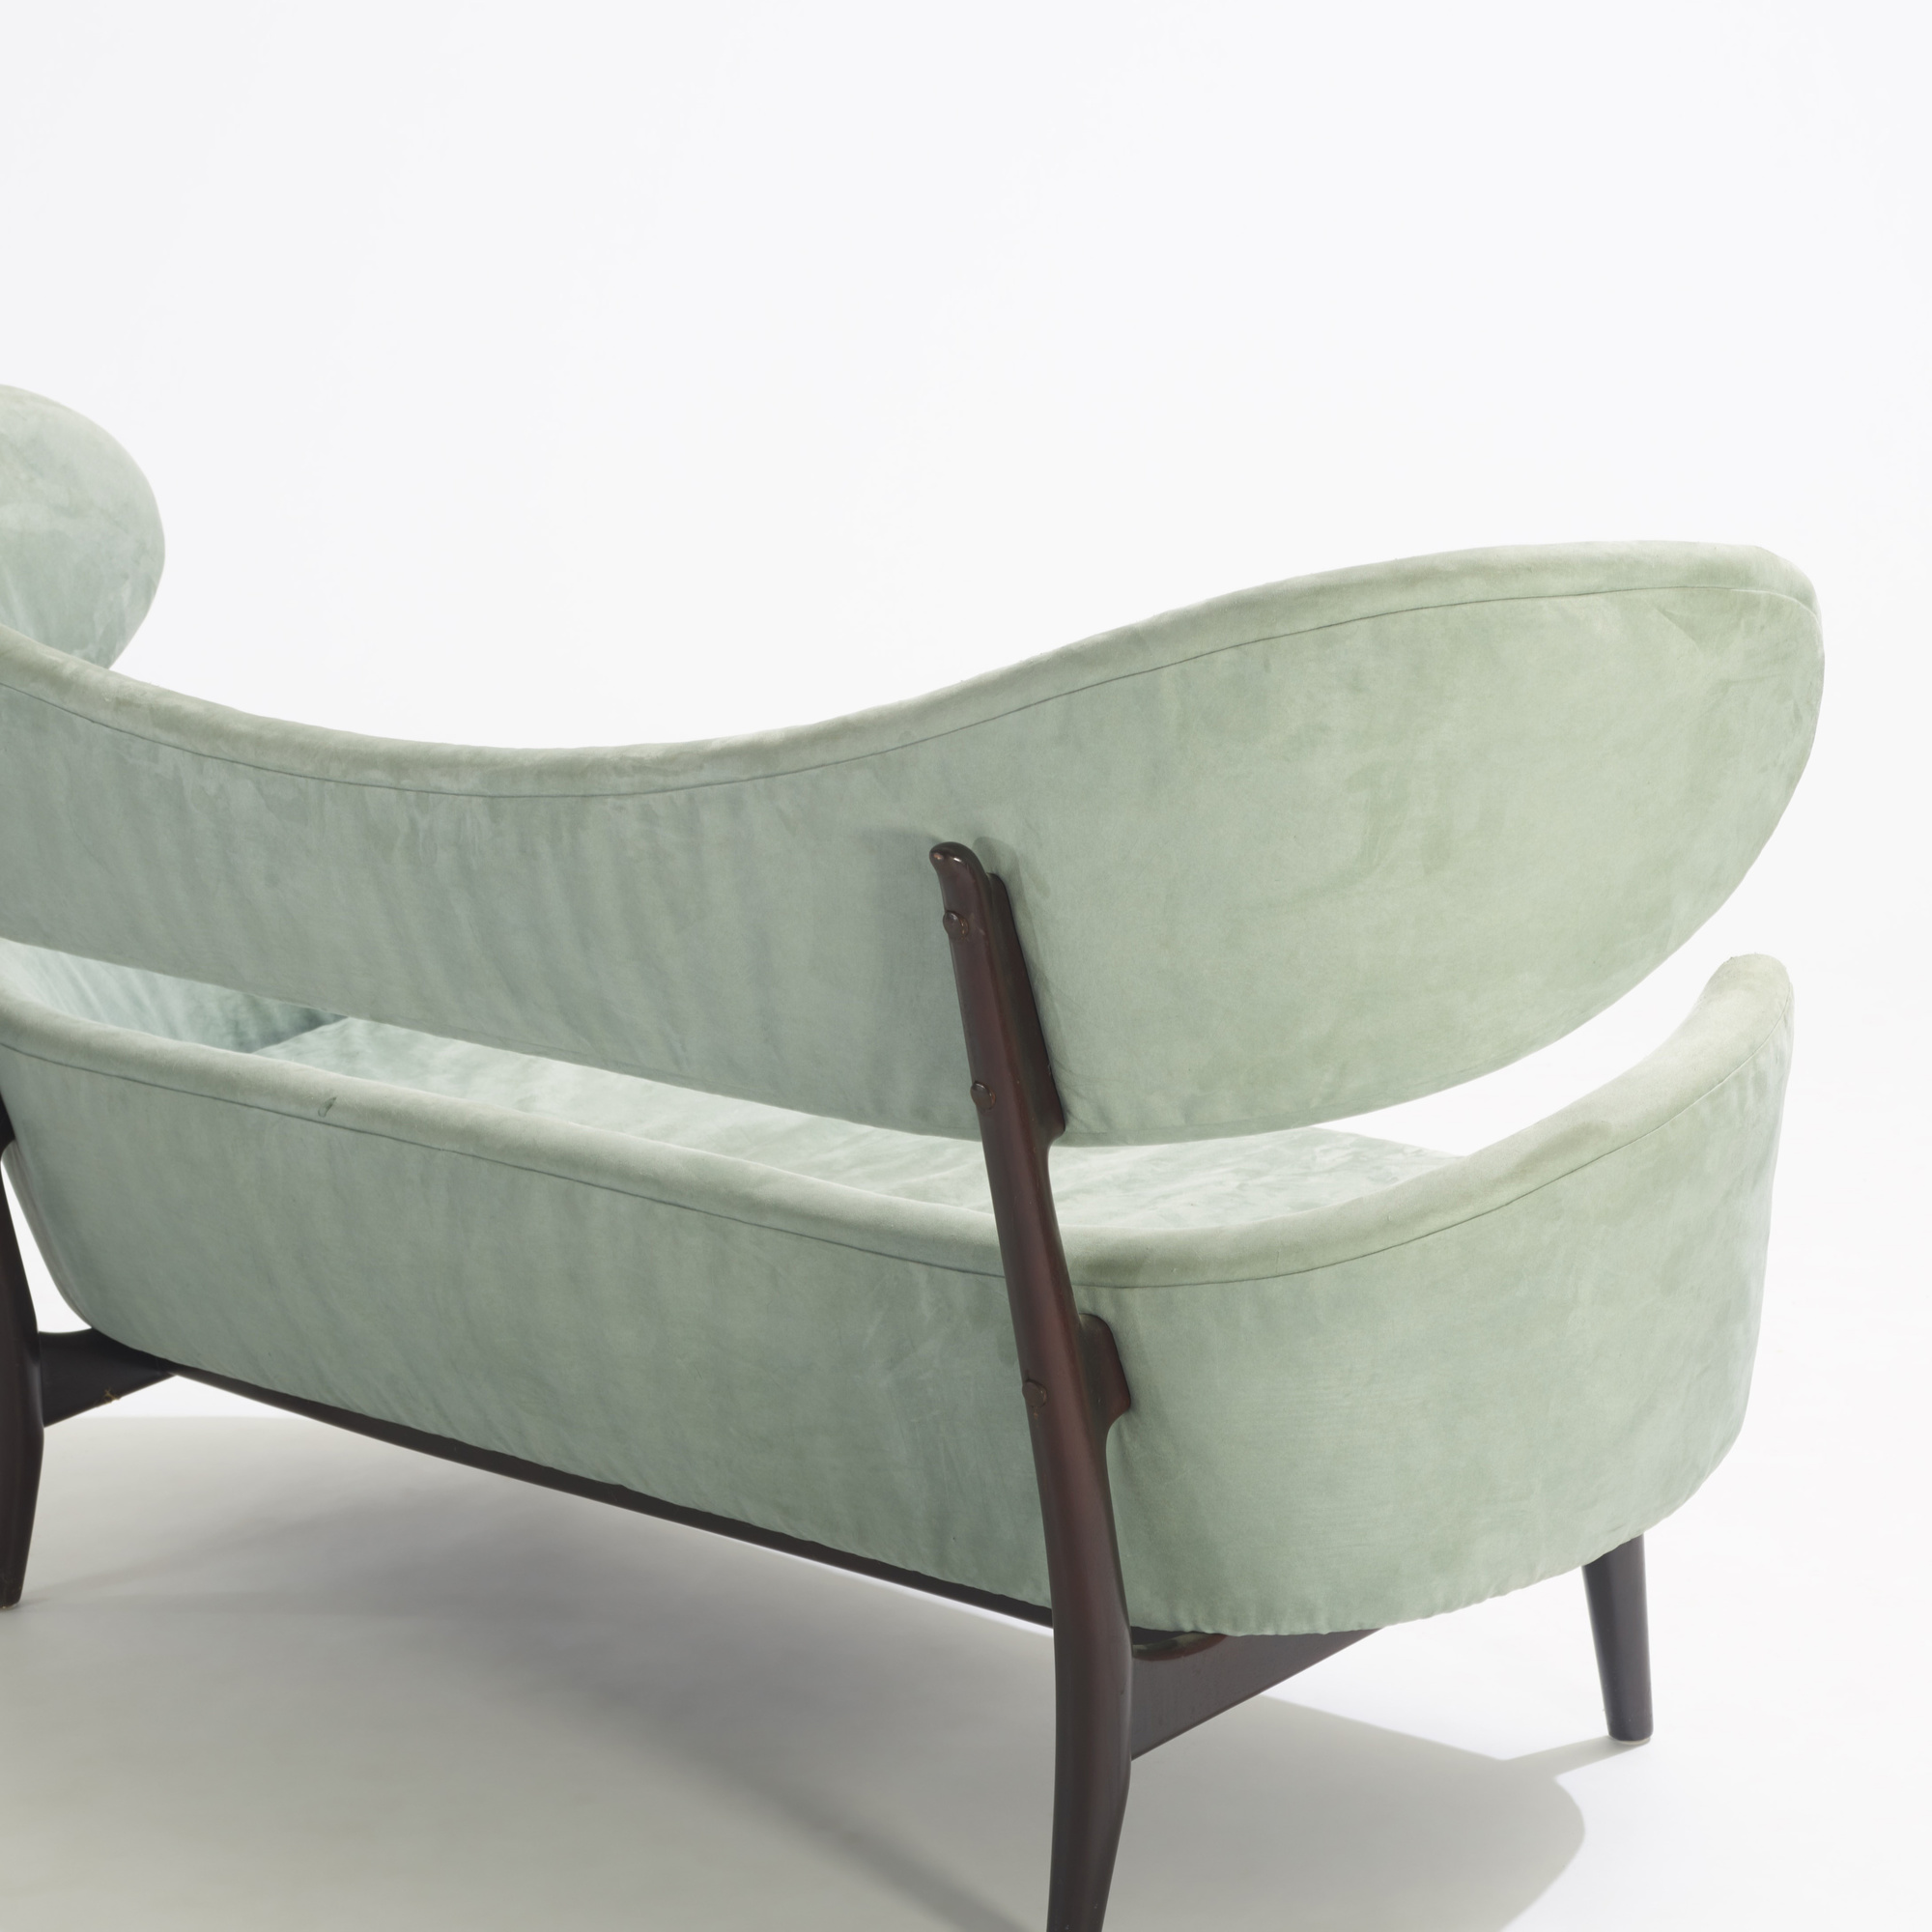 134: Finn Juhl / rare sofa (4 of 5)